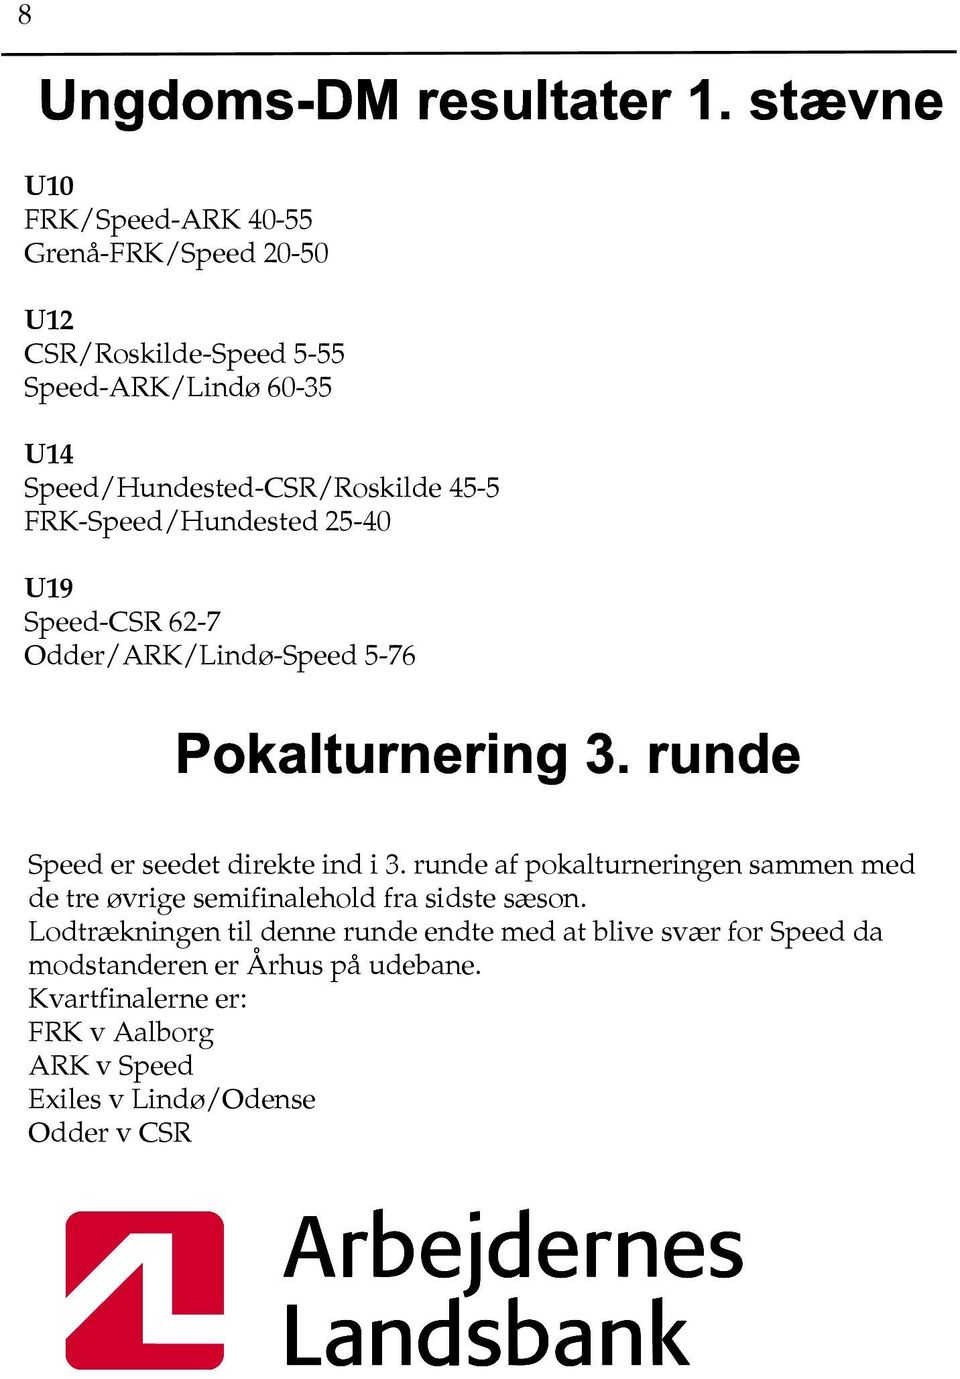 45-5 FRK-Speed/Hundested 25-40 U19 Speed-CSR 62-7 Odder/ARK/Lindø-Speed 5-76 Pokalturnering 3. runde Speed er seedet direkte ind i 3.